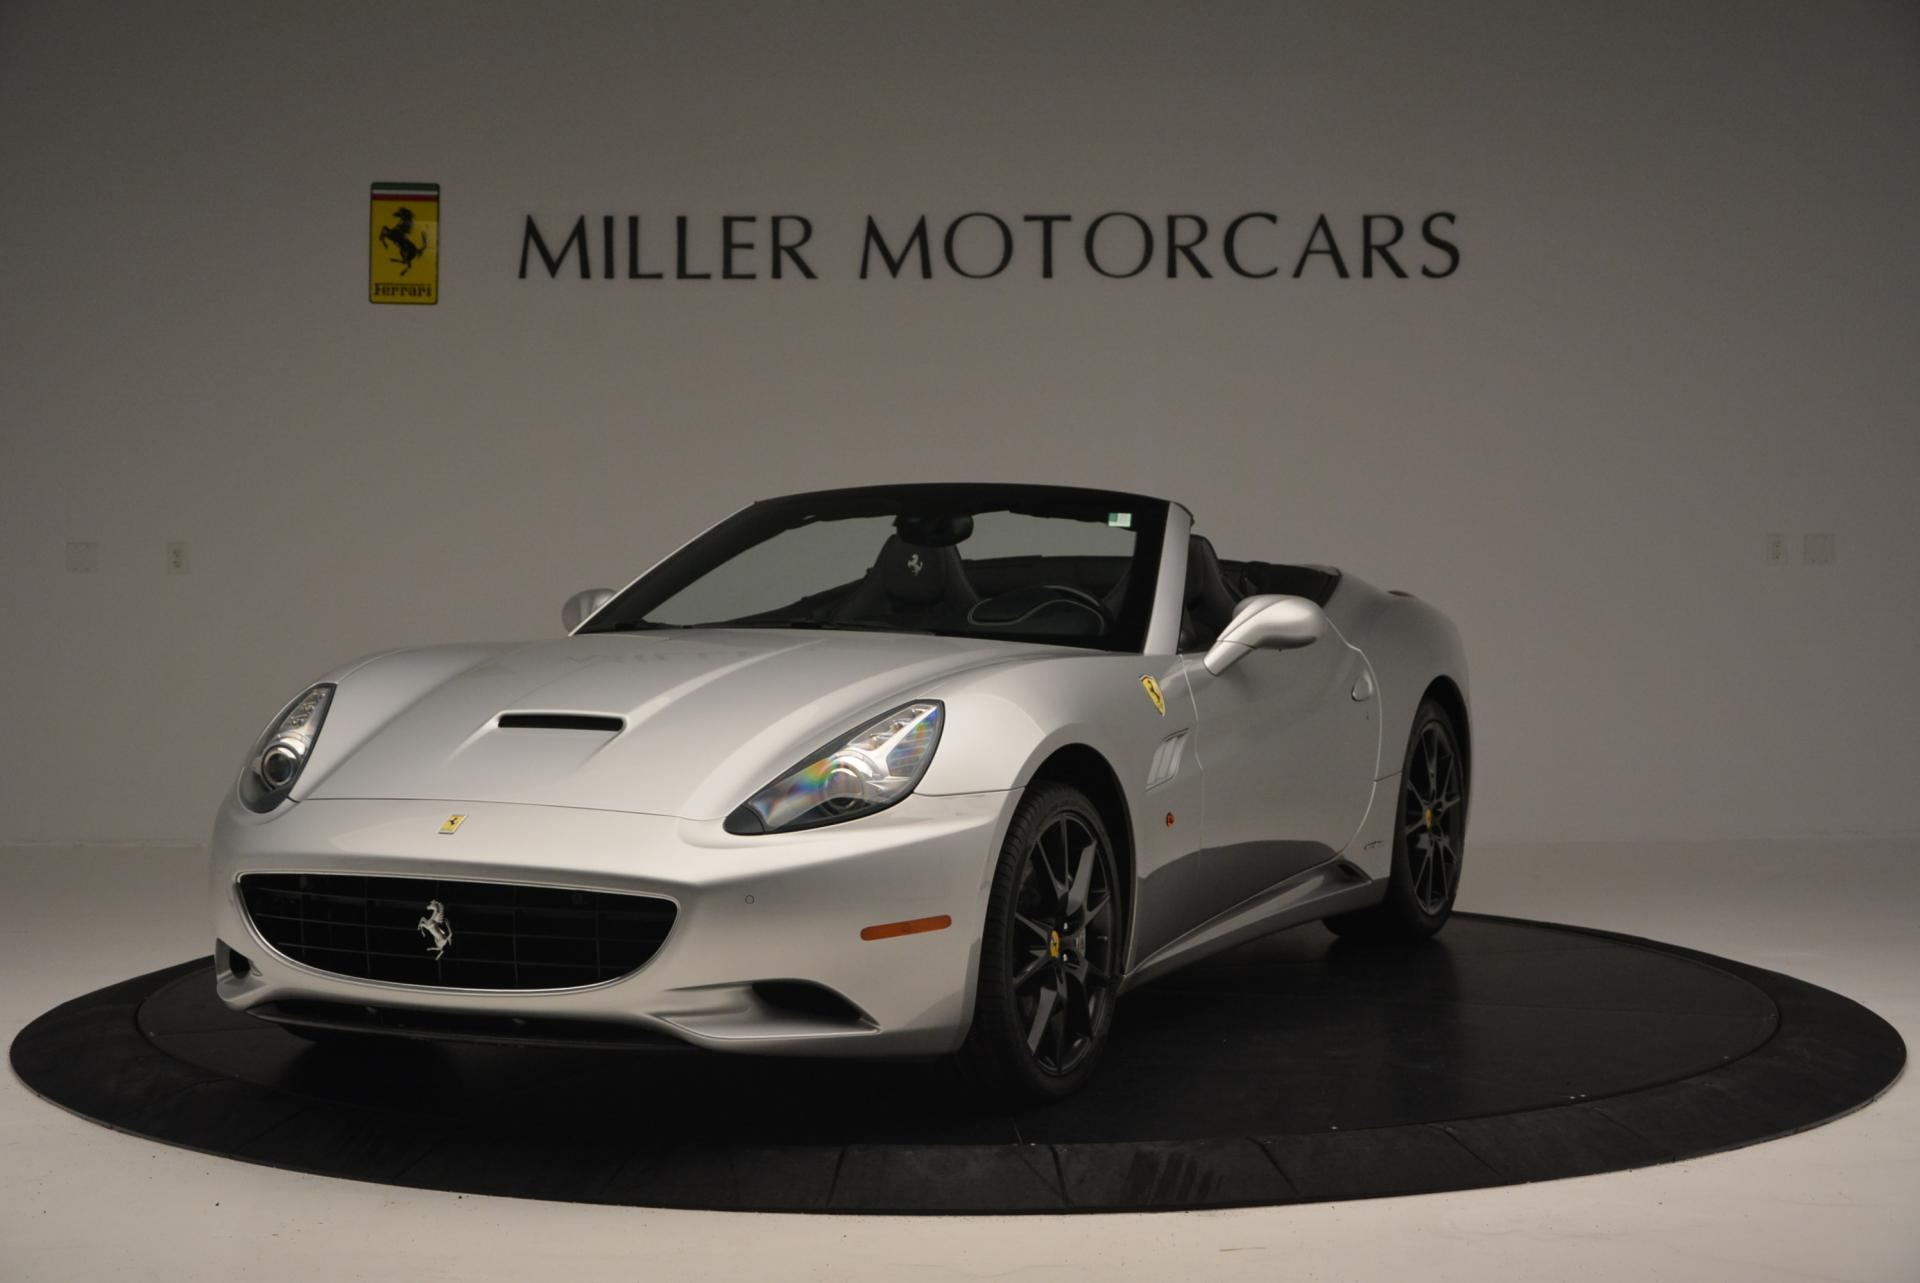 Used 2012 Ferrari California for sale Sold at Aston Martin of Greenwich in Greenwich CT 06830 1